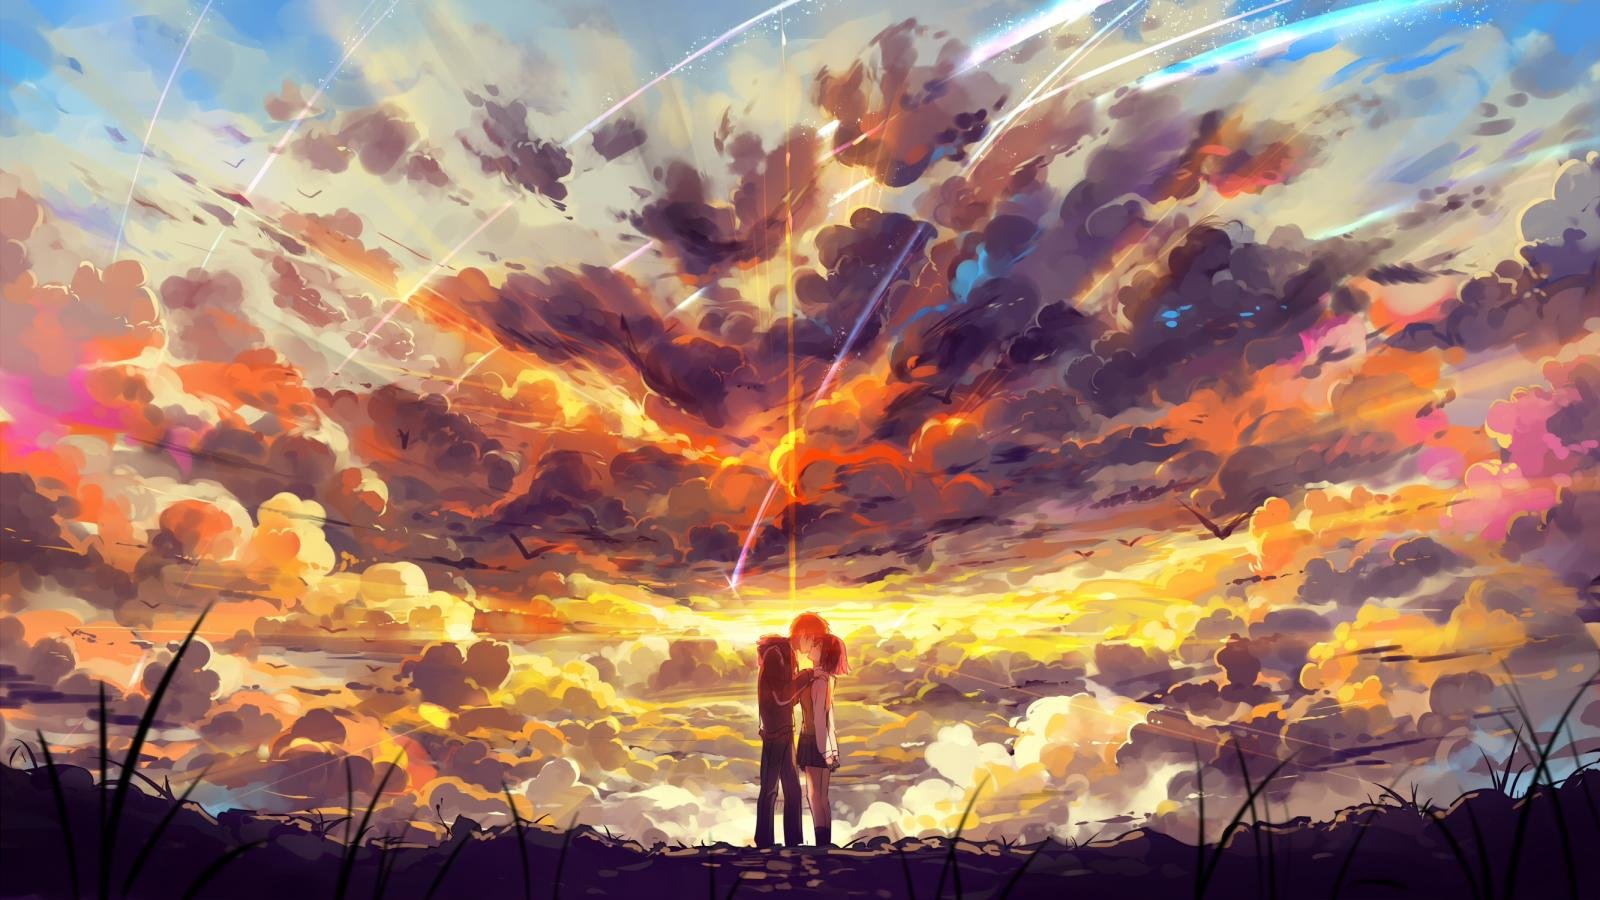 BEST WALLPAPER: Your Name Wallpaper Pc